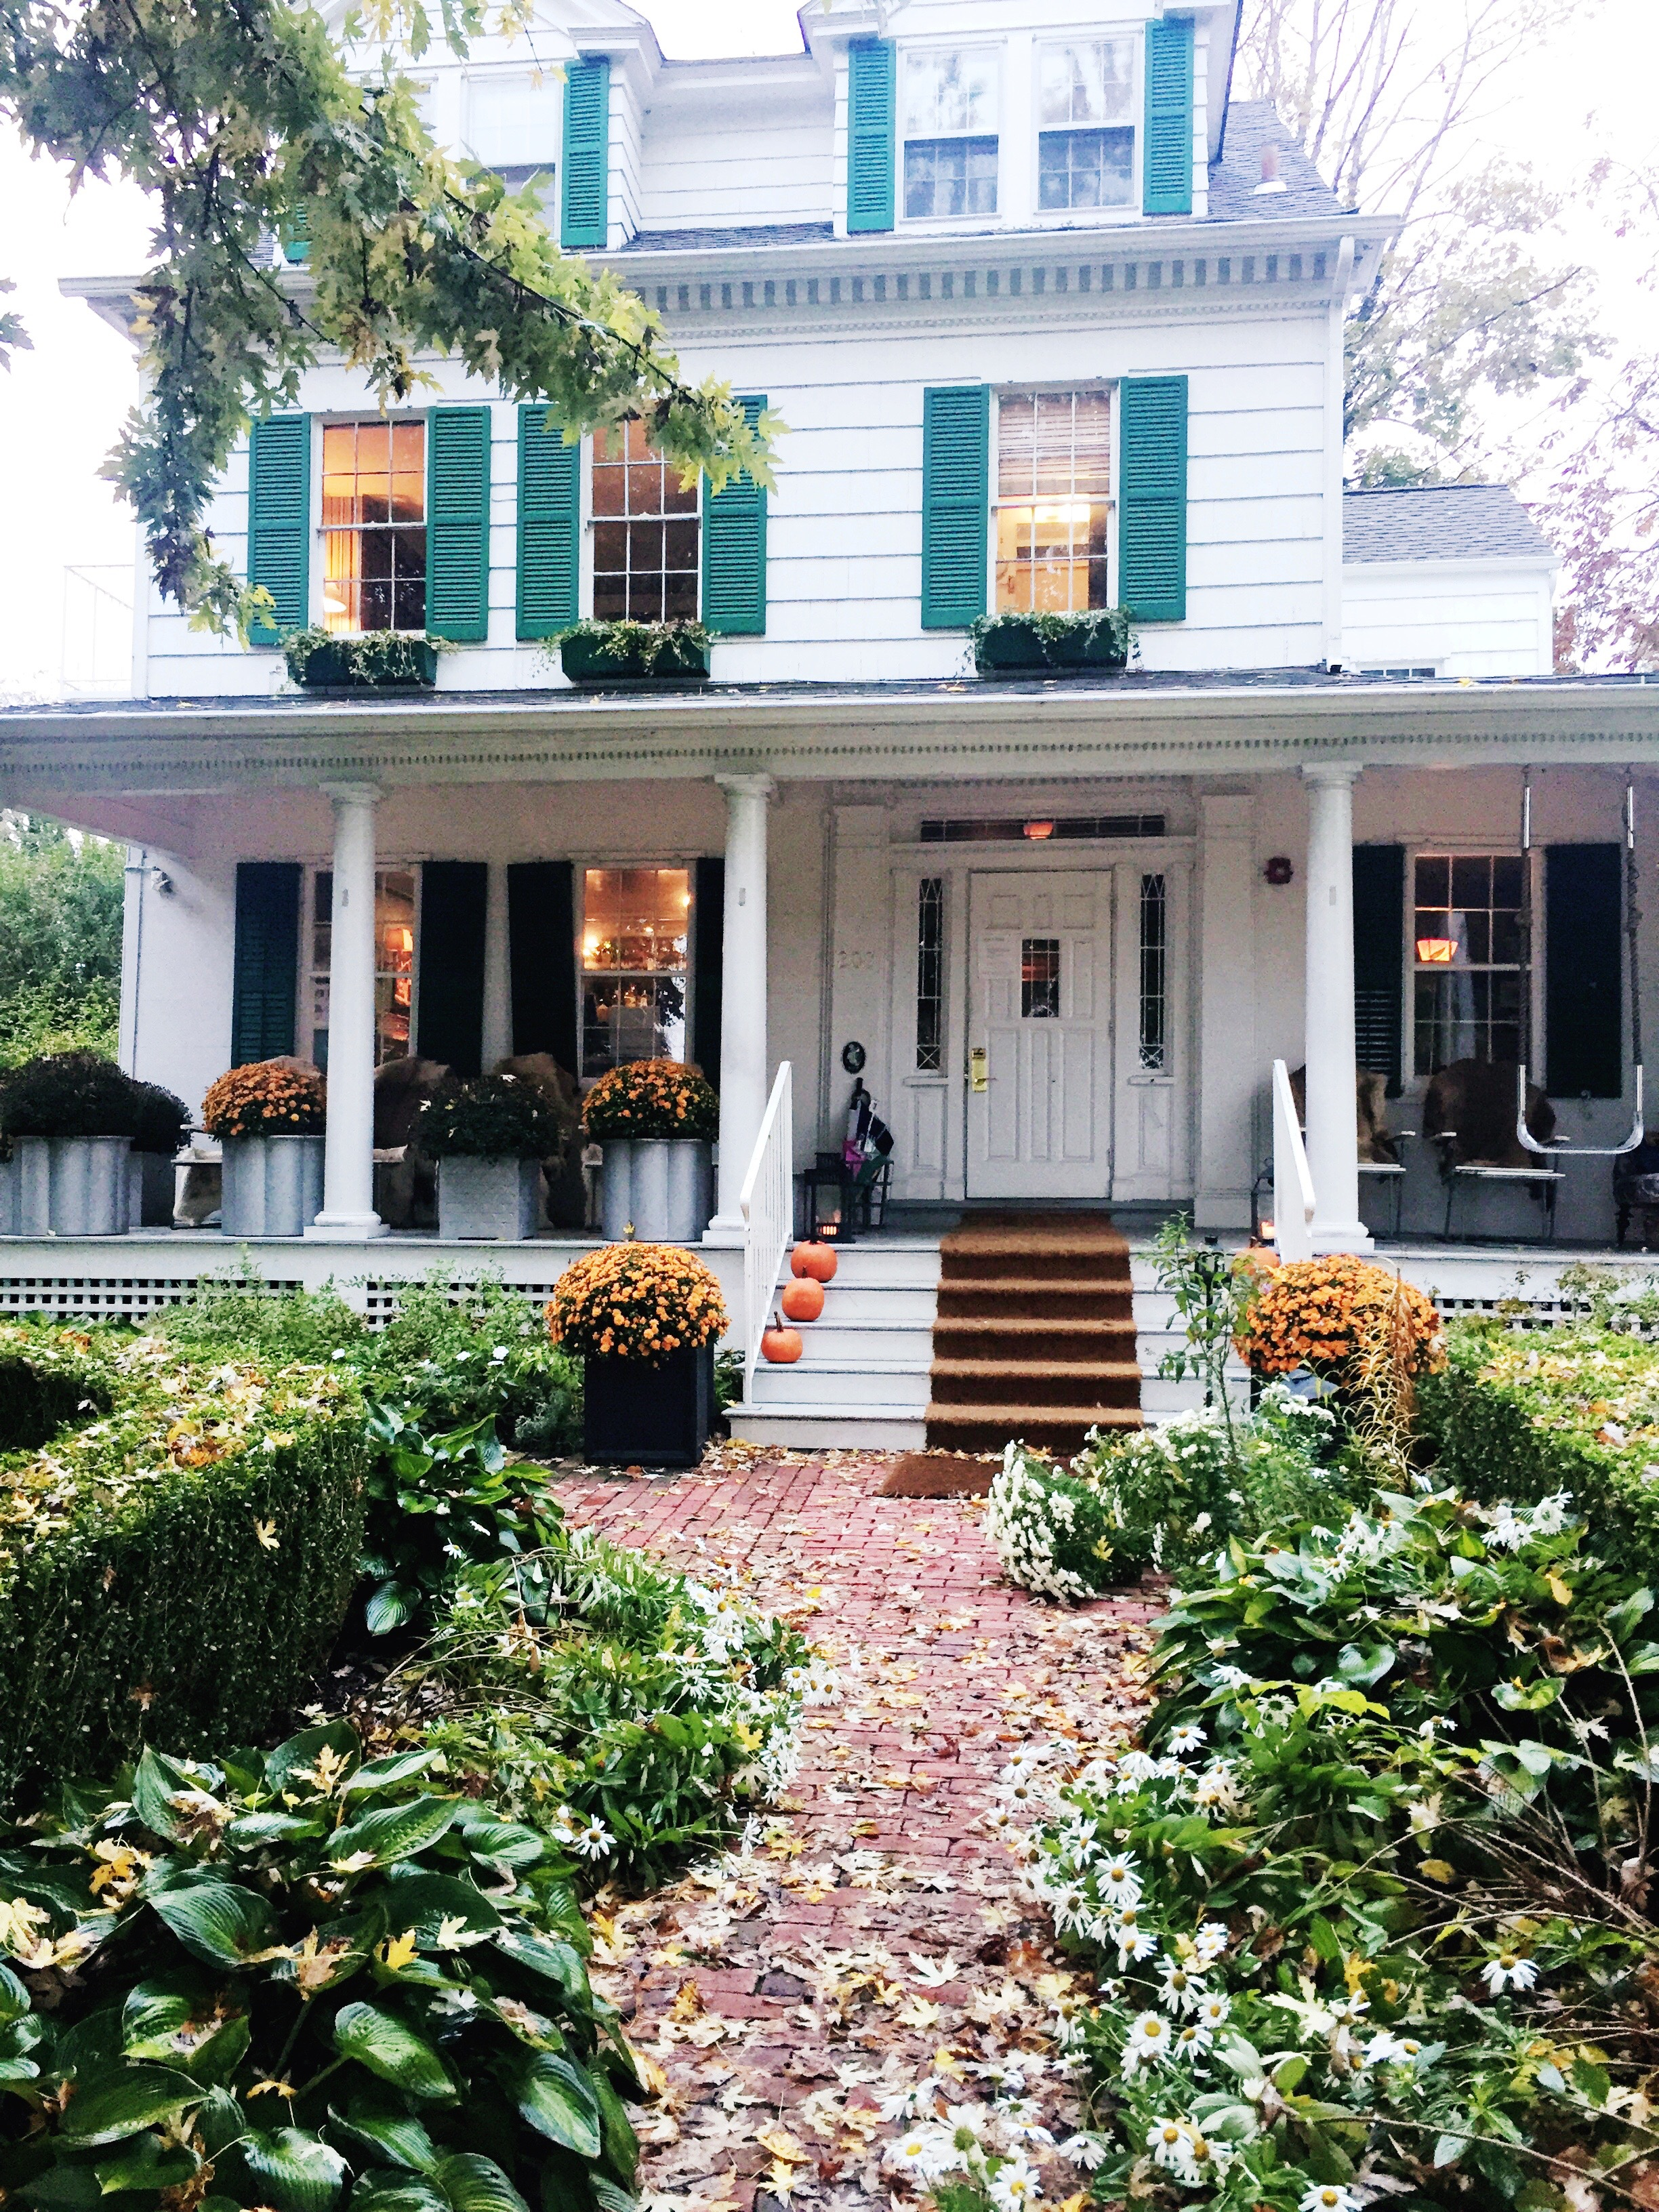 The front of c/o The Maidstone, located in a traditional Hamptons style home.